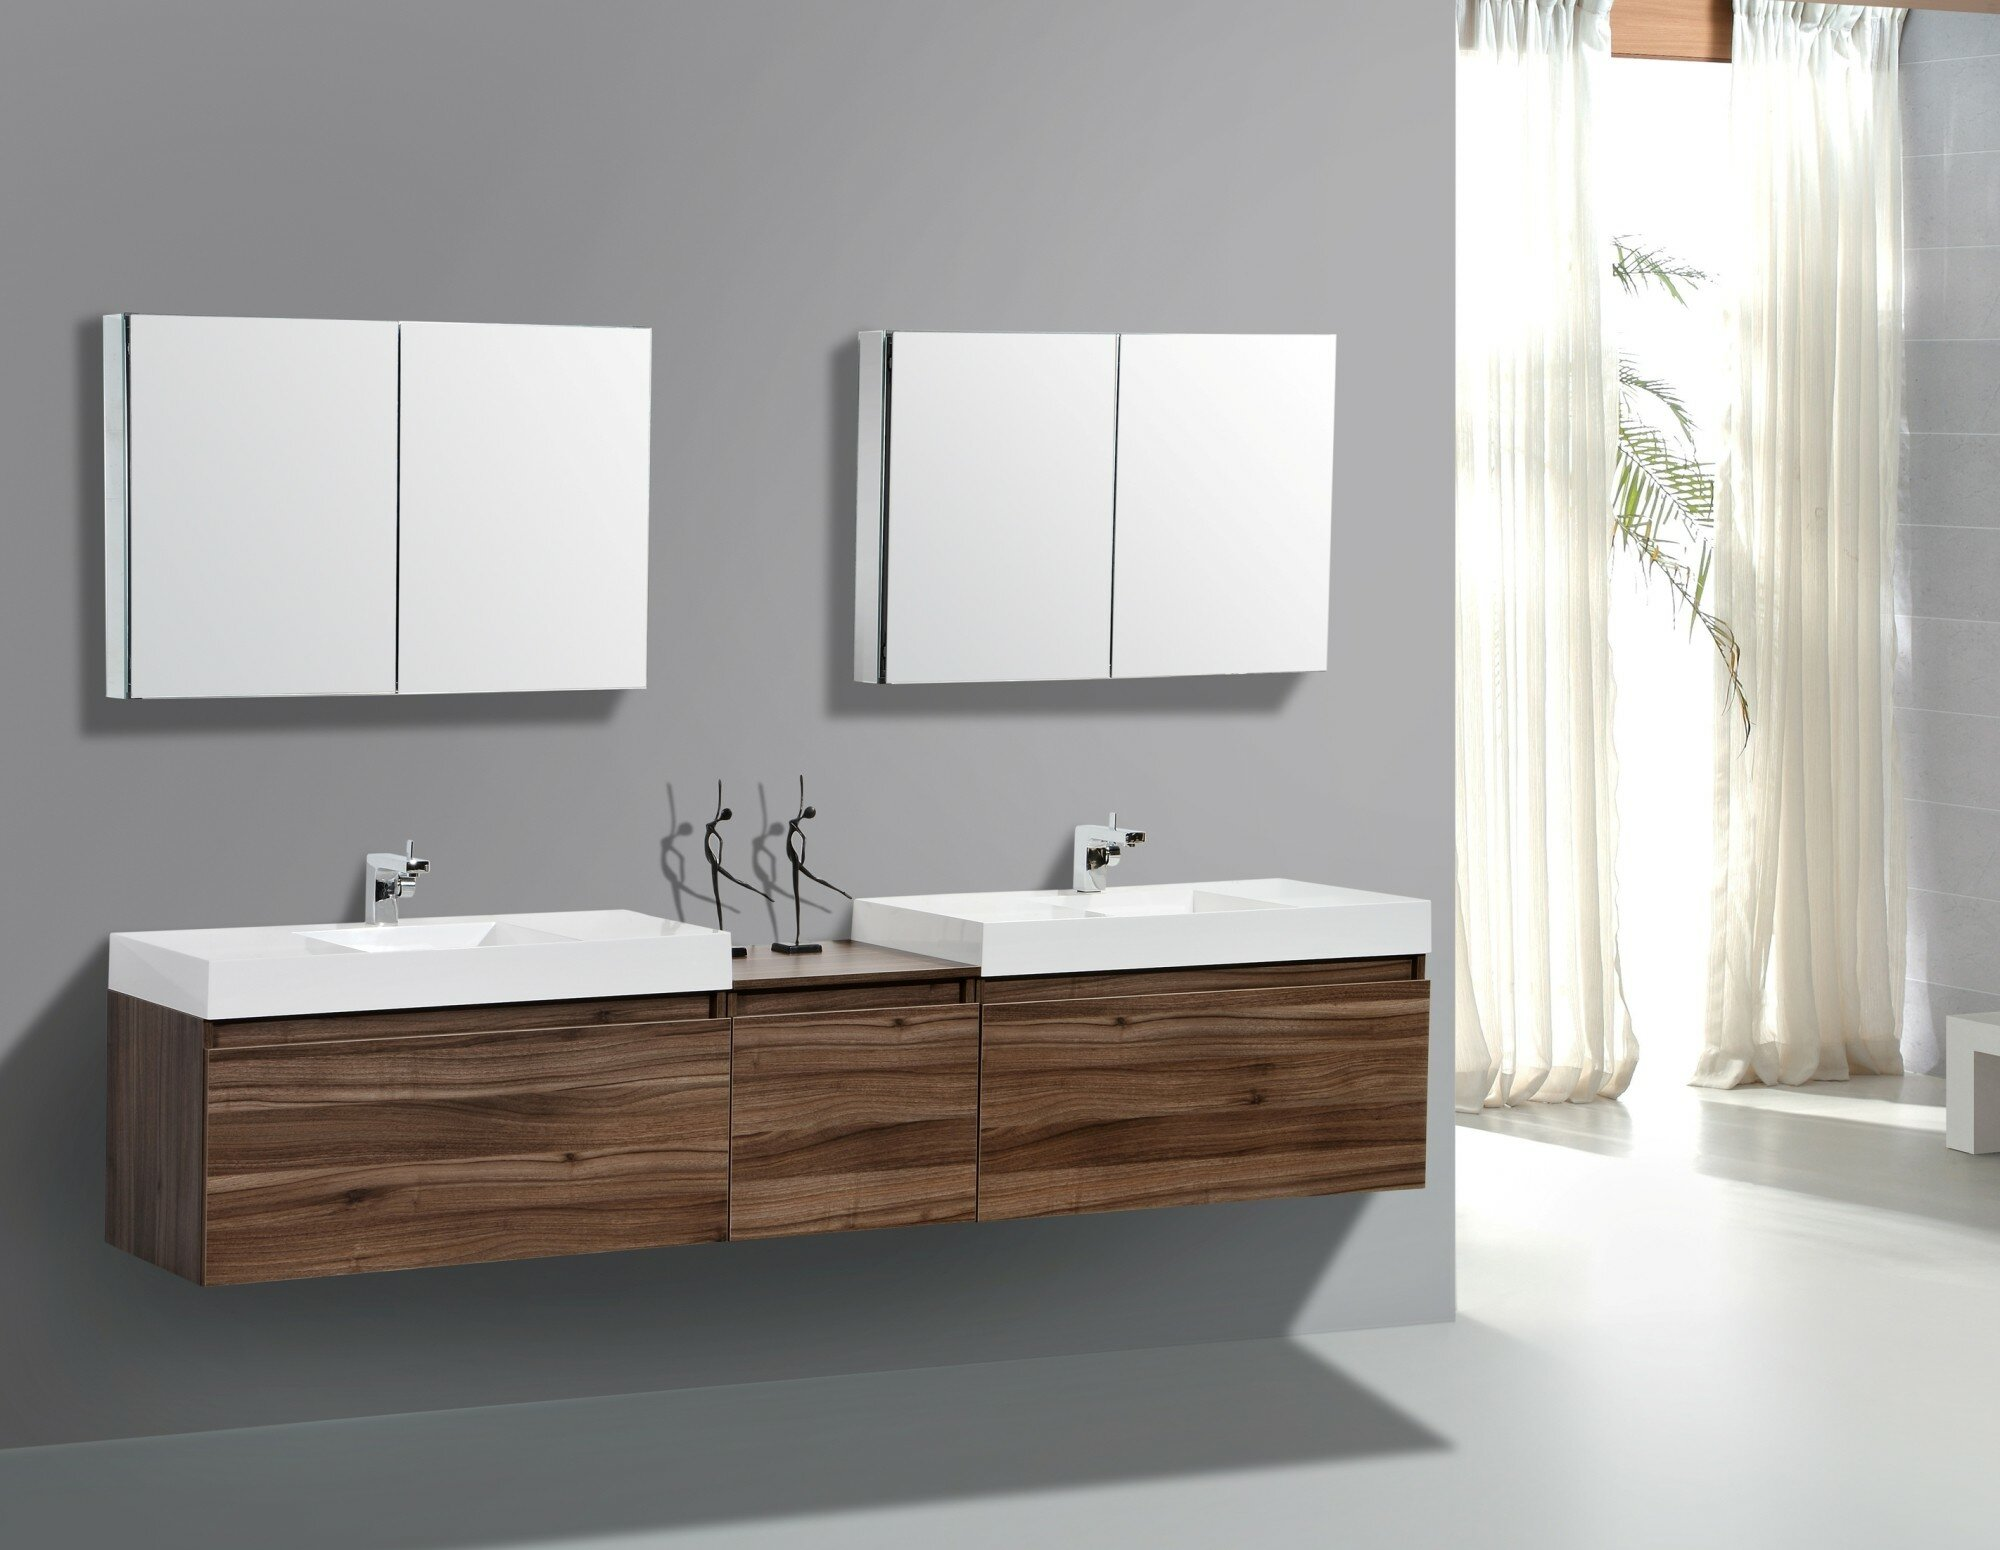 Bathroom Vanities Modern modern bathroom vanity, modern bathroom vanity triton, dsc88061 pd